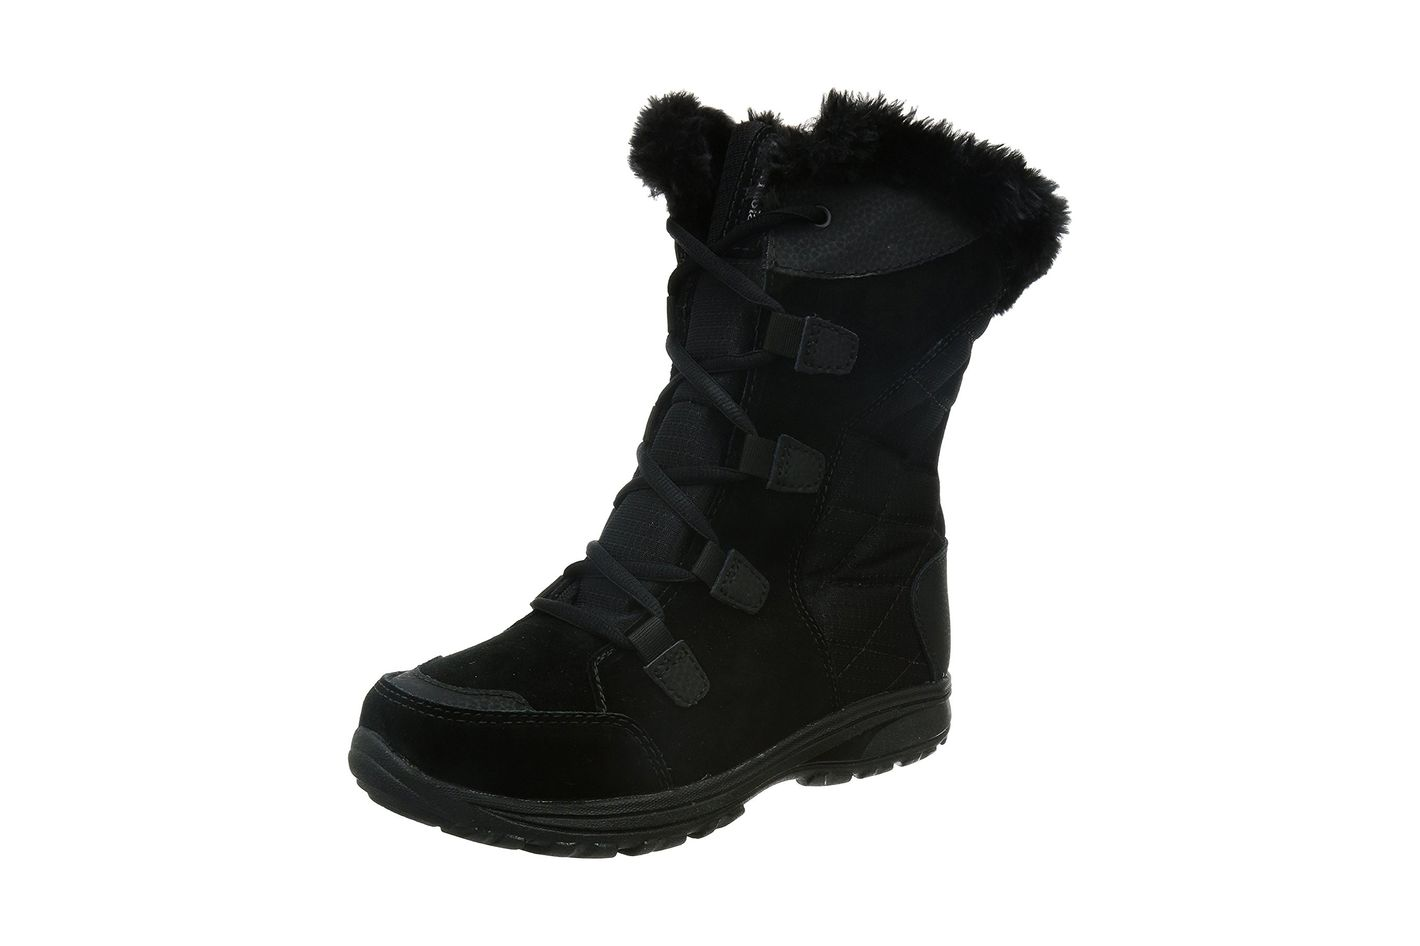 a6bcb717279 Columbia Women s Ice Maiden II Snow Boot